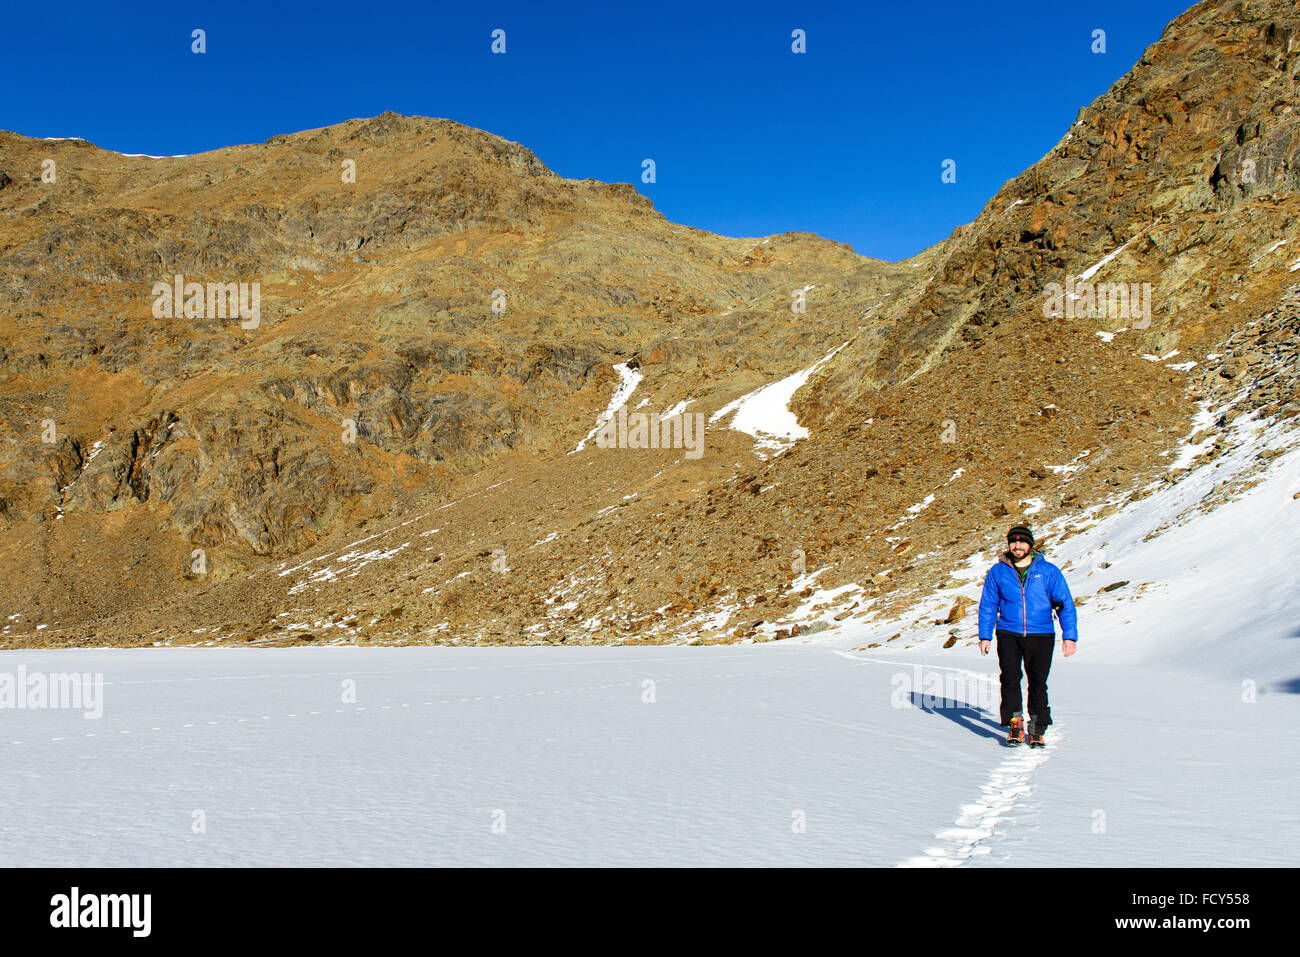 Winterwandern auf zugefrorenen See / winter hiking on frozen lake - Stock Image